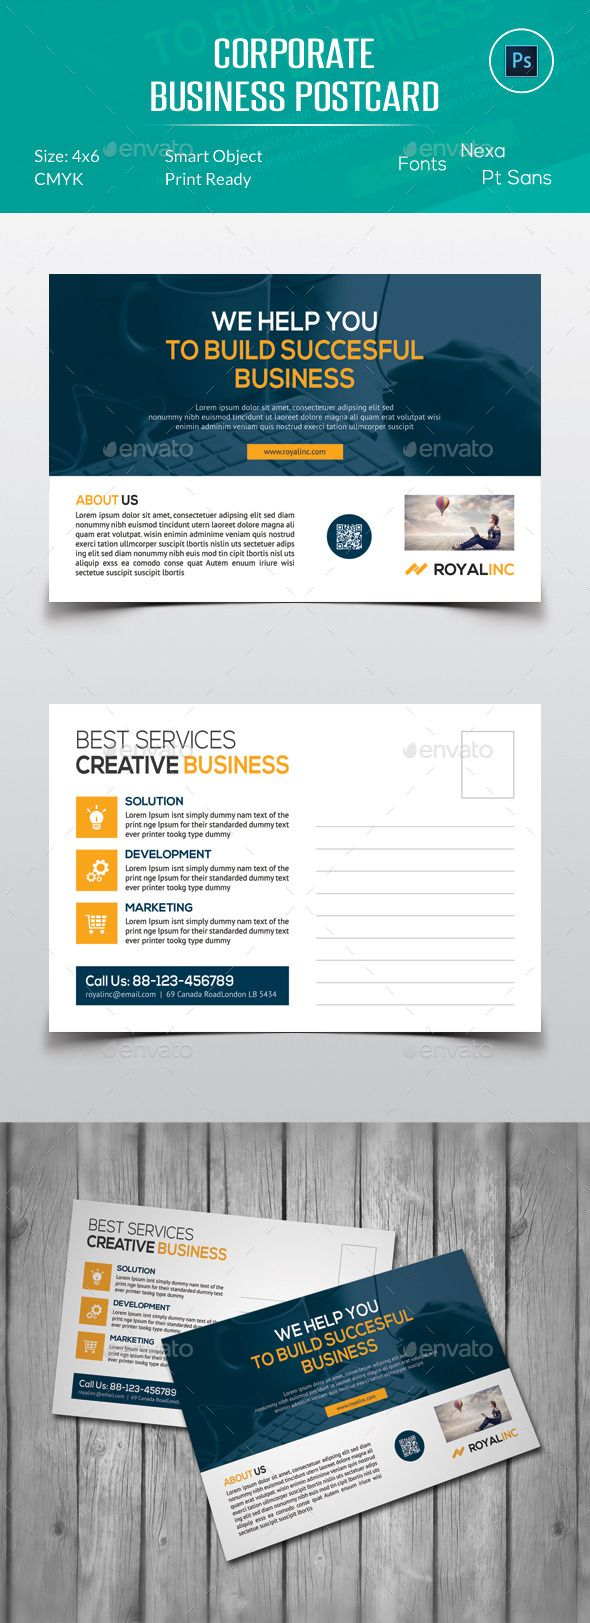 Corporate business postcard template design buy and download http corporate business postcard template design buy and download httpgraphicriveritemcorporate business postcard12834572refksioks accmission Image collections